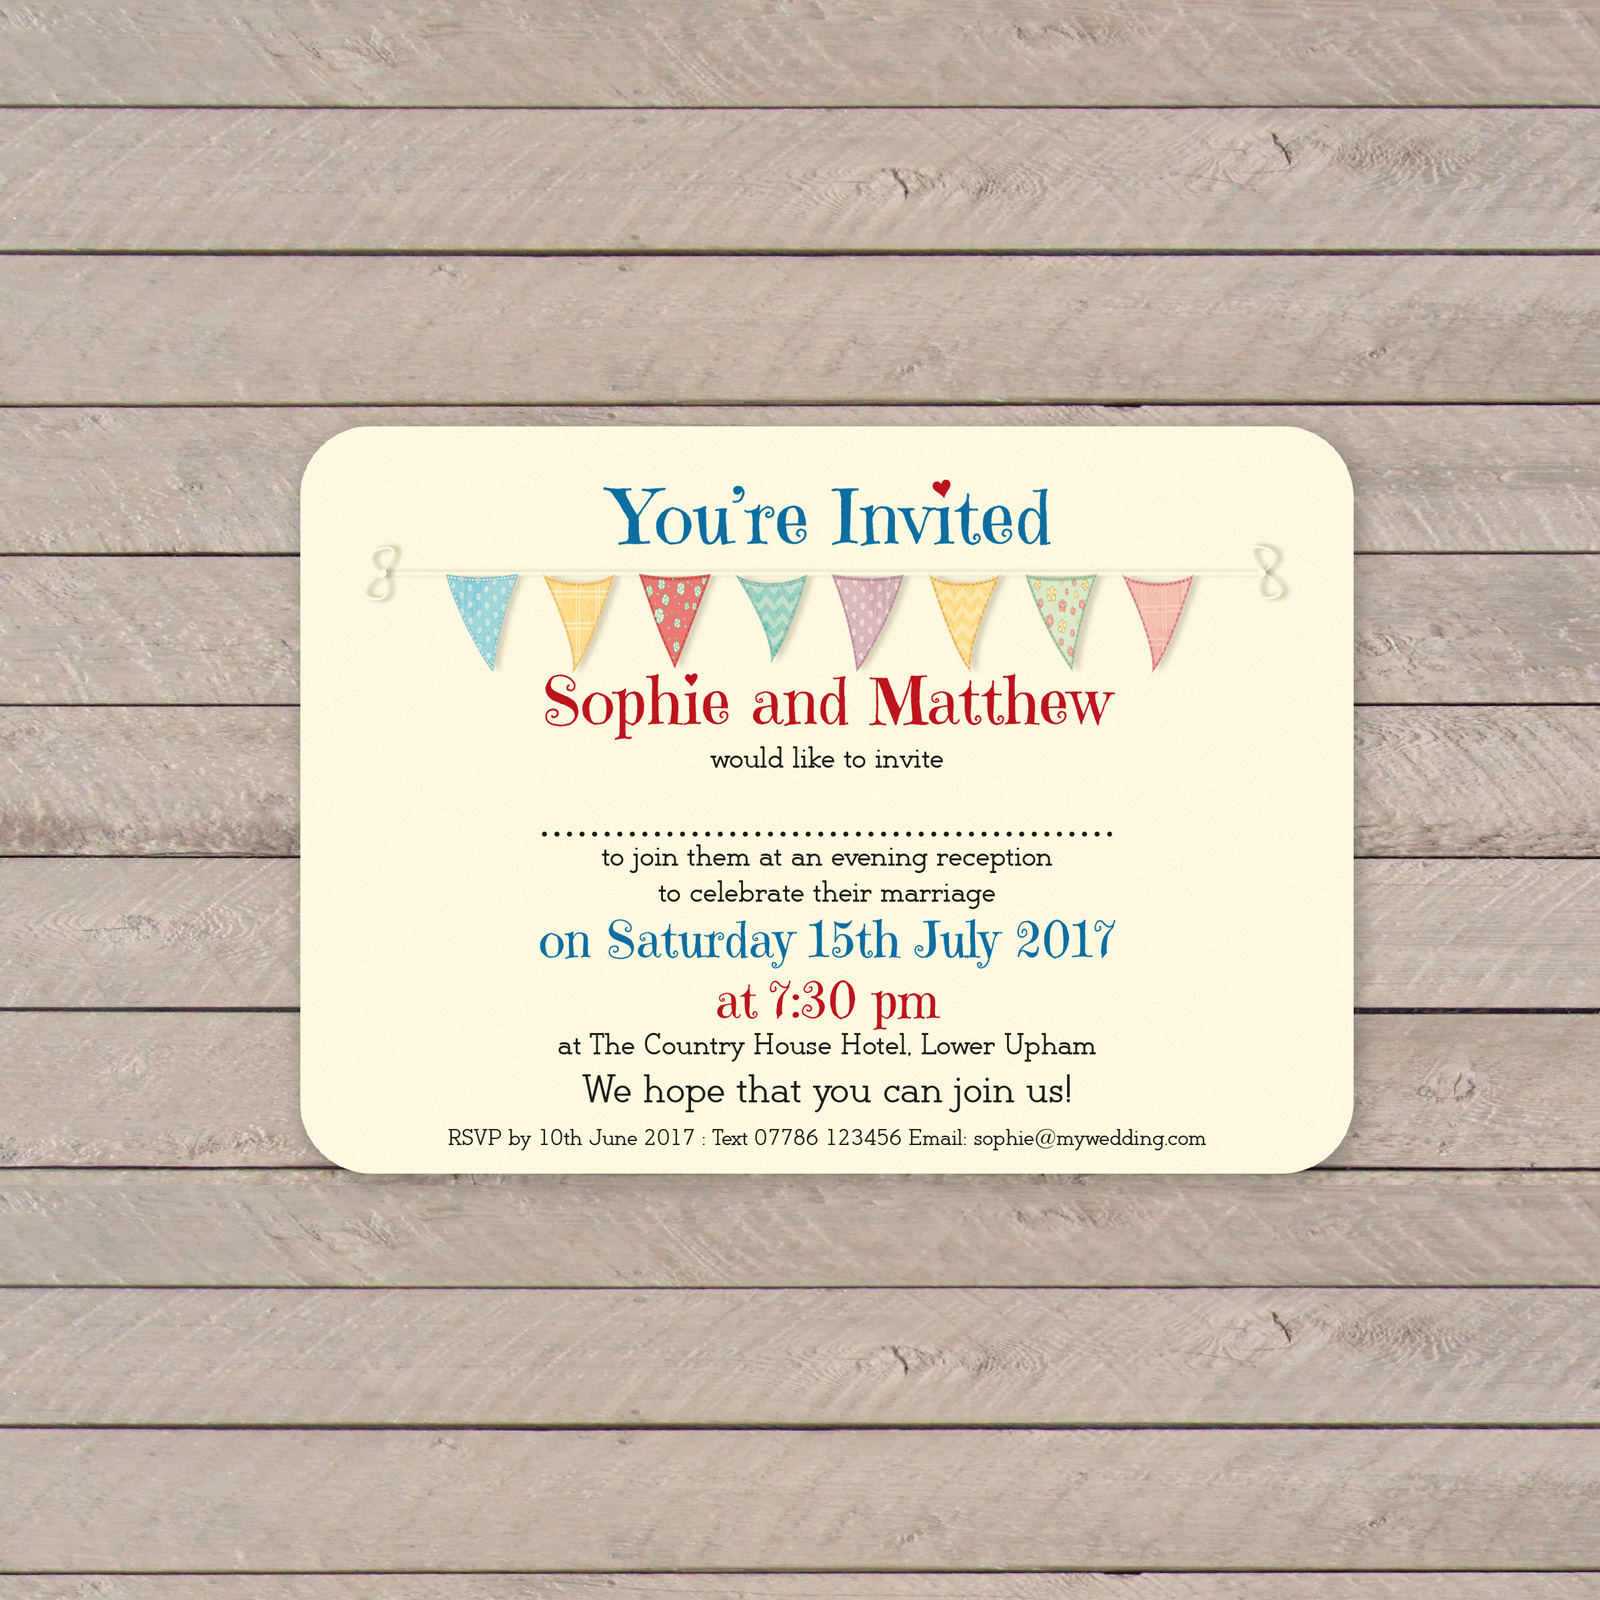 Festival A6 on Ivory Card - Evening Invitation